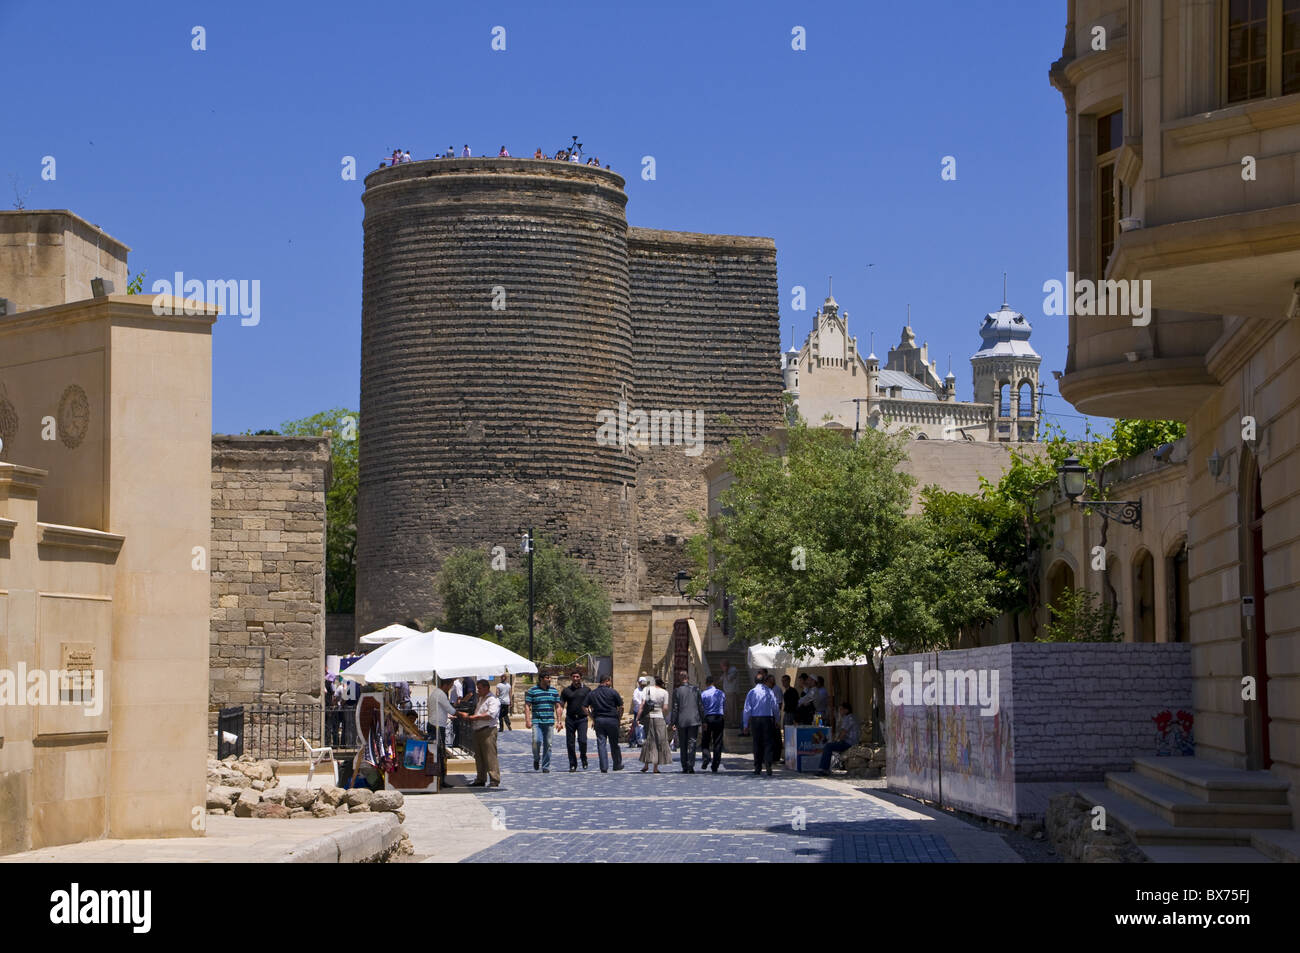 Maiden Tower in the center of the old town of Baku, UNESCO World Heritage Site, Azerbaijan, Central Asia, Asia - Stock Image